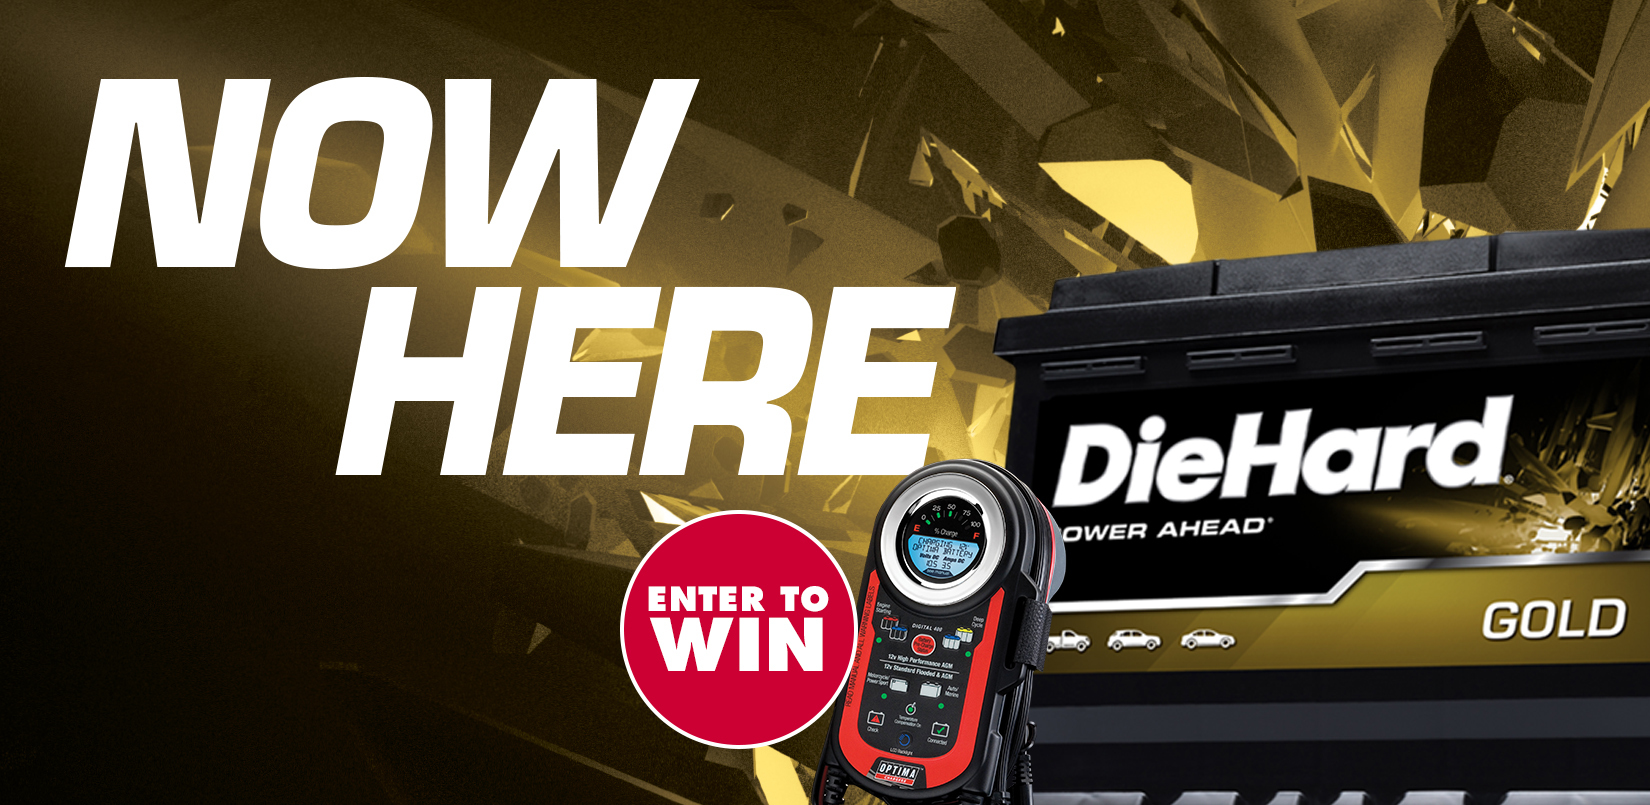 DieHard Battery sweepstakes